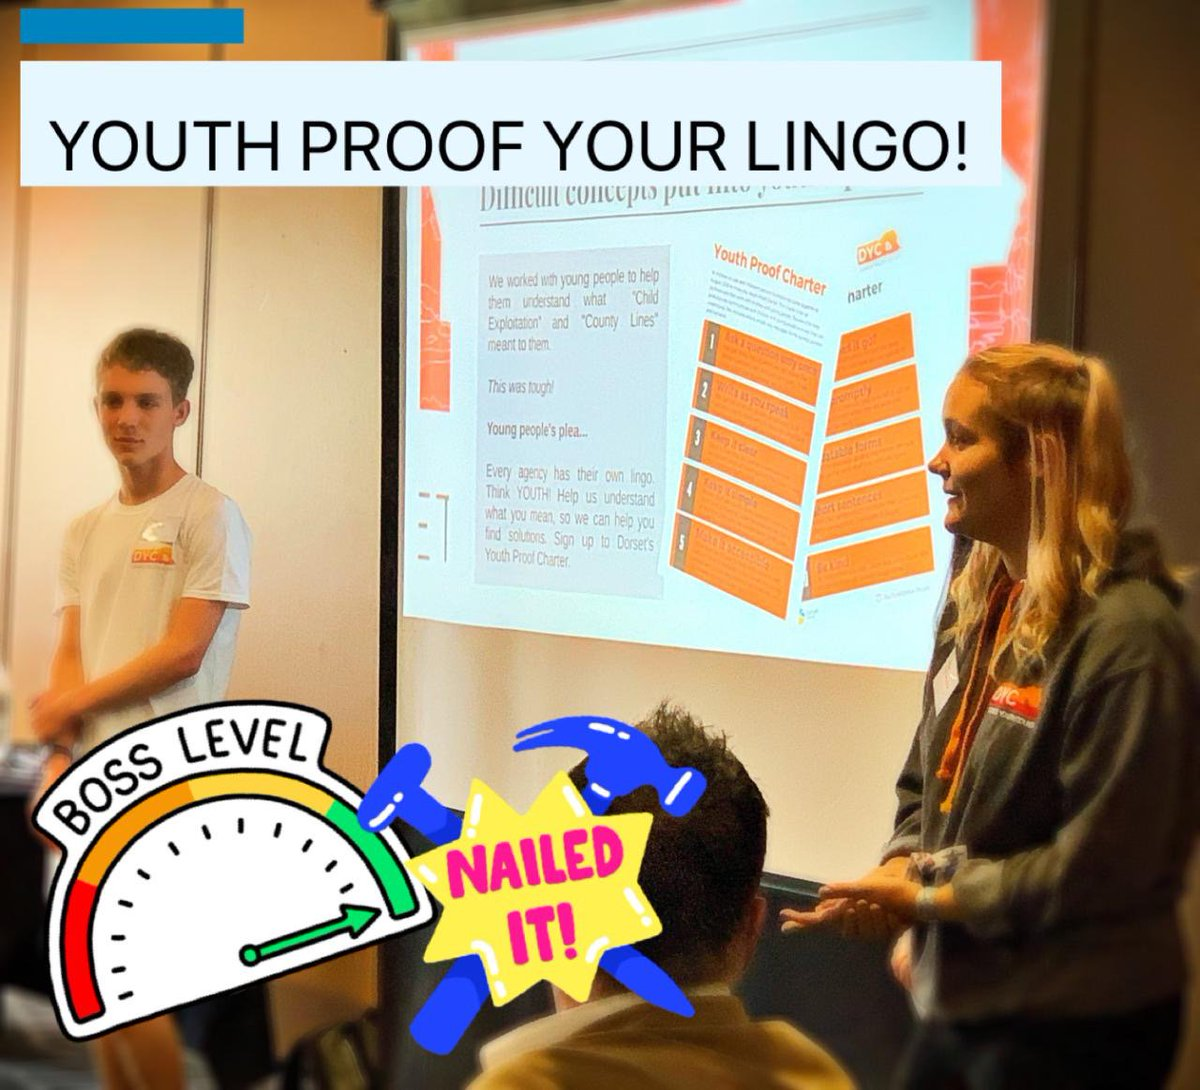 We hear this time and time again from young people - their plea to every professional that works with them - YOUTH PROOF YOUR LINGO! Stasia enrolling the Teenagers at Risk conference participants in Bournemouth today in exactly that!   #wiseup #youthvoice #professional<br>http://pic.twitter.com/jjCodR6cFu